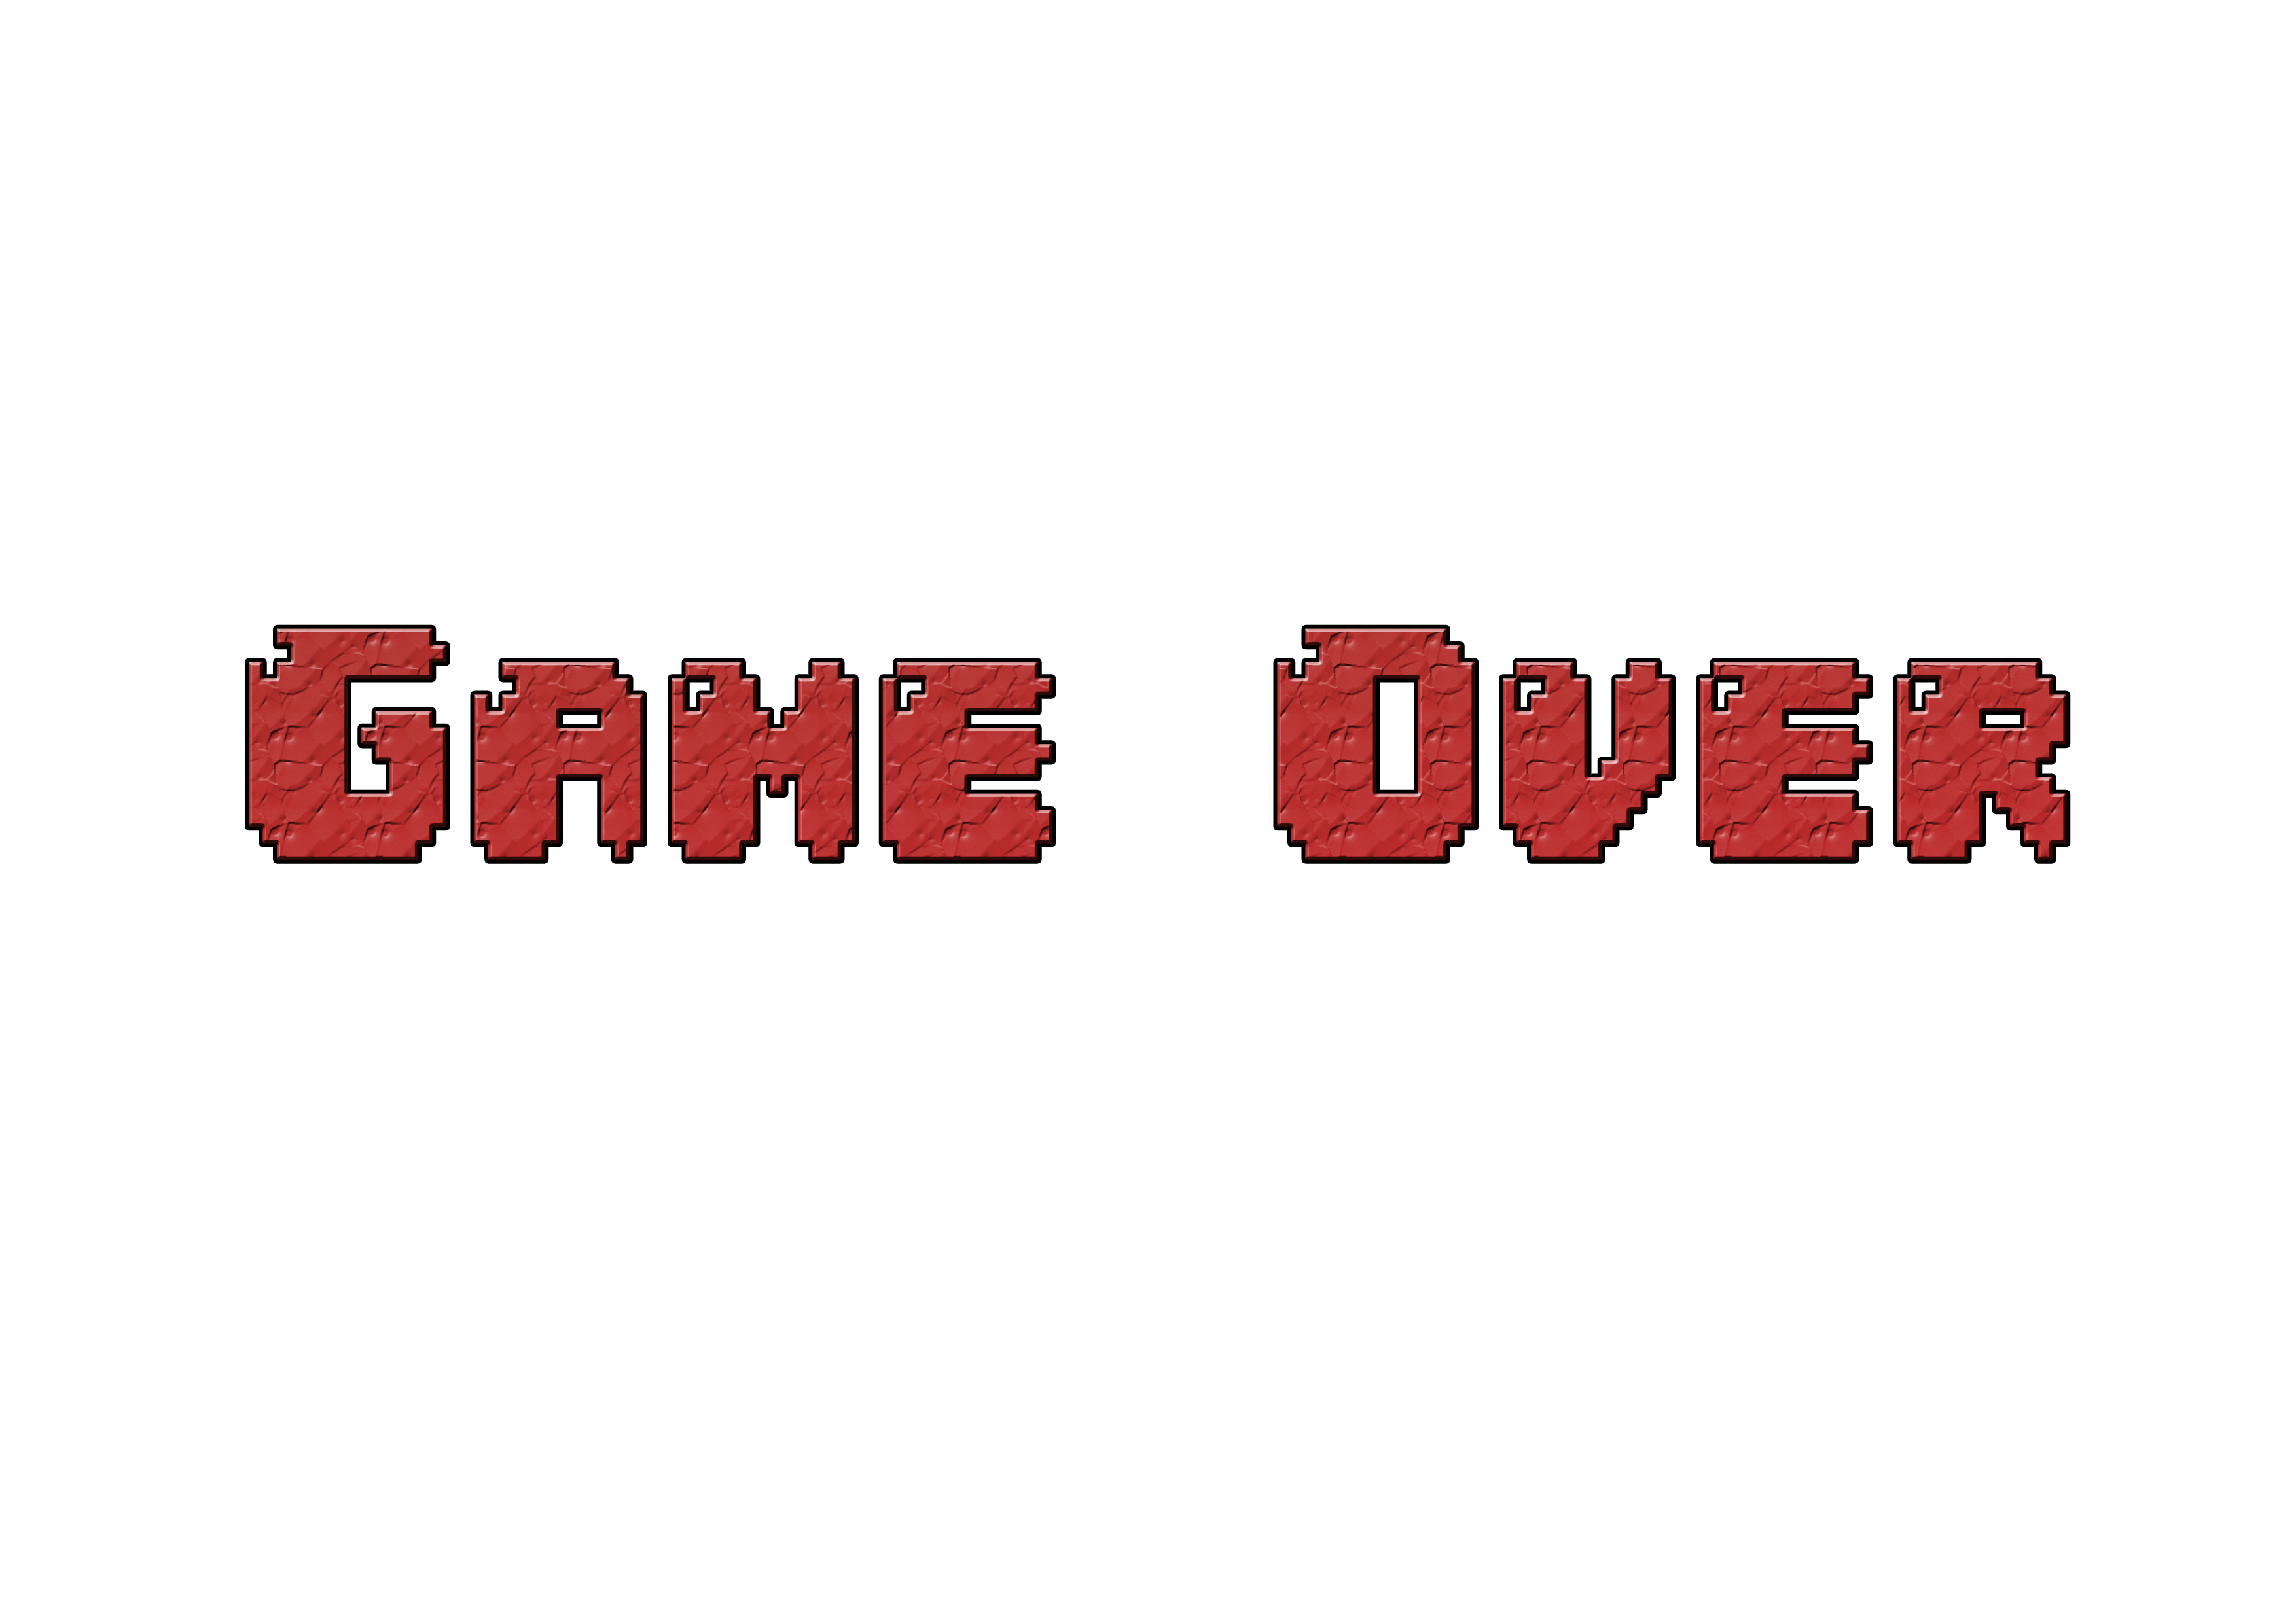 Game Over Png Image PPT Backgrounds